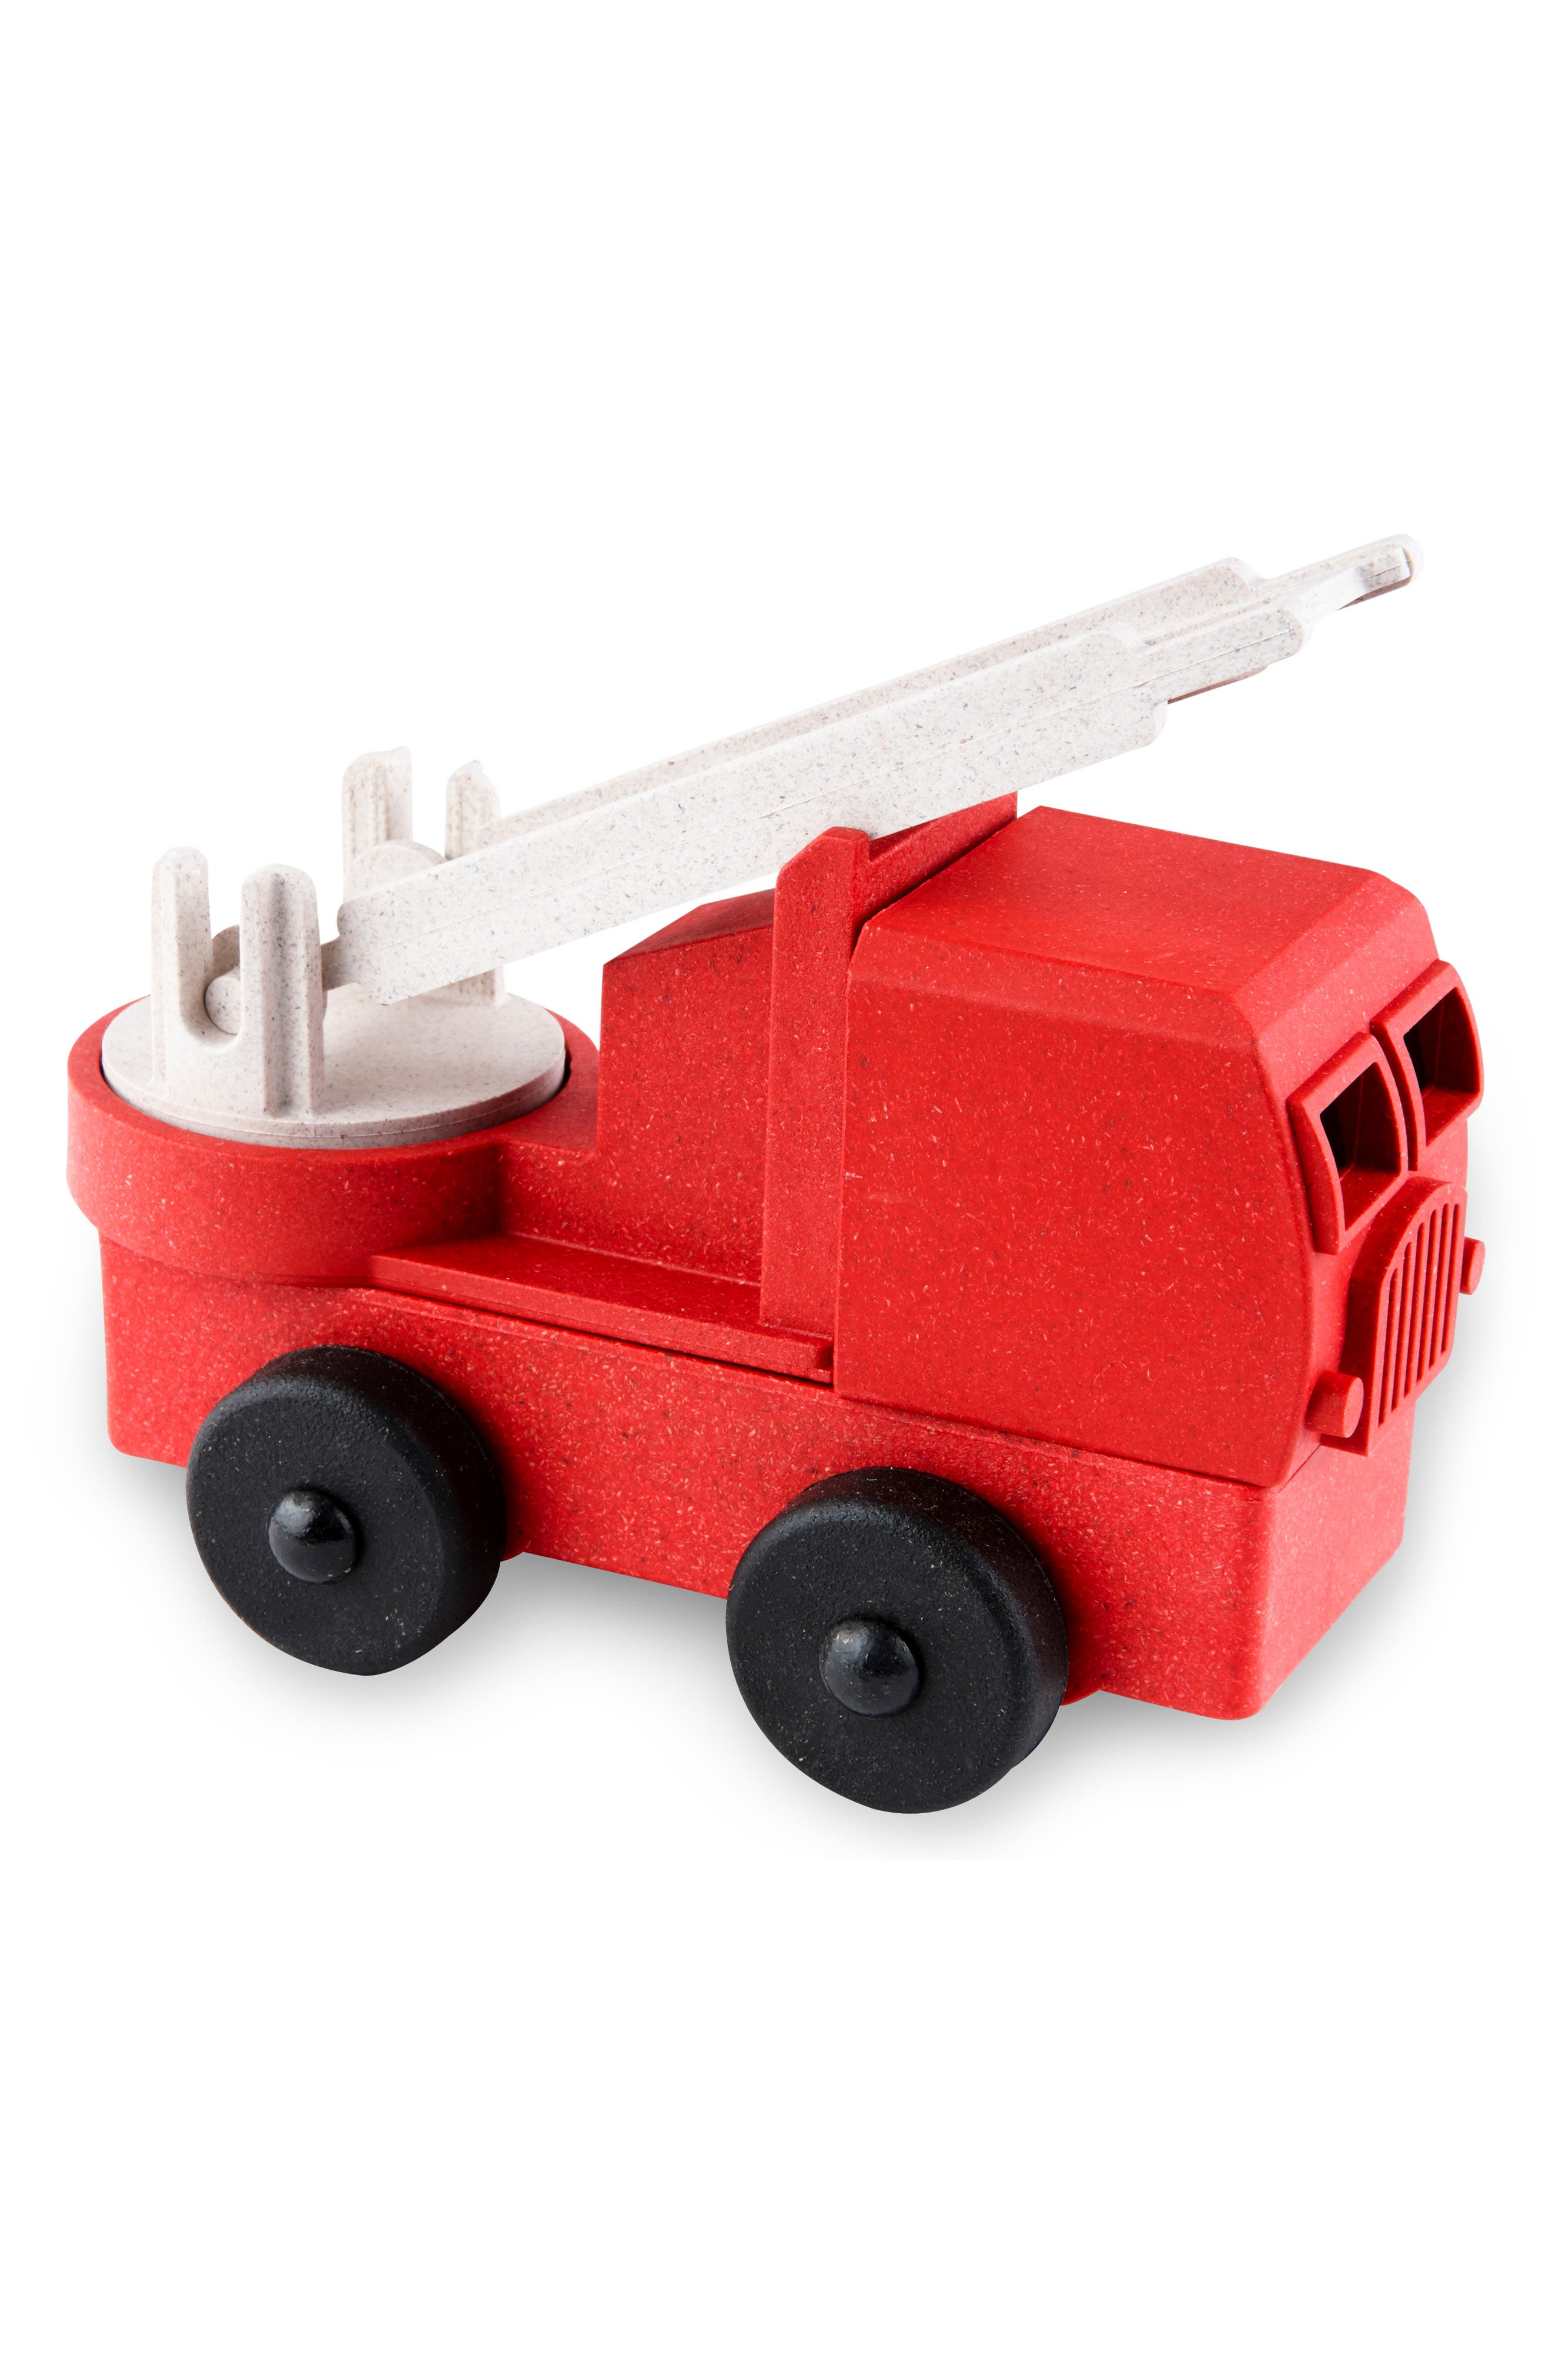 Lukes Toy Factory Educational 5Piece Puzzle Fire Truck Toy